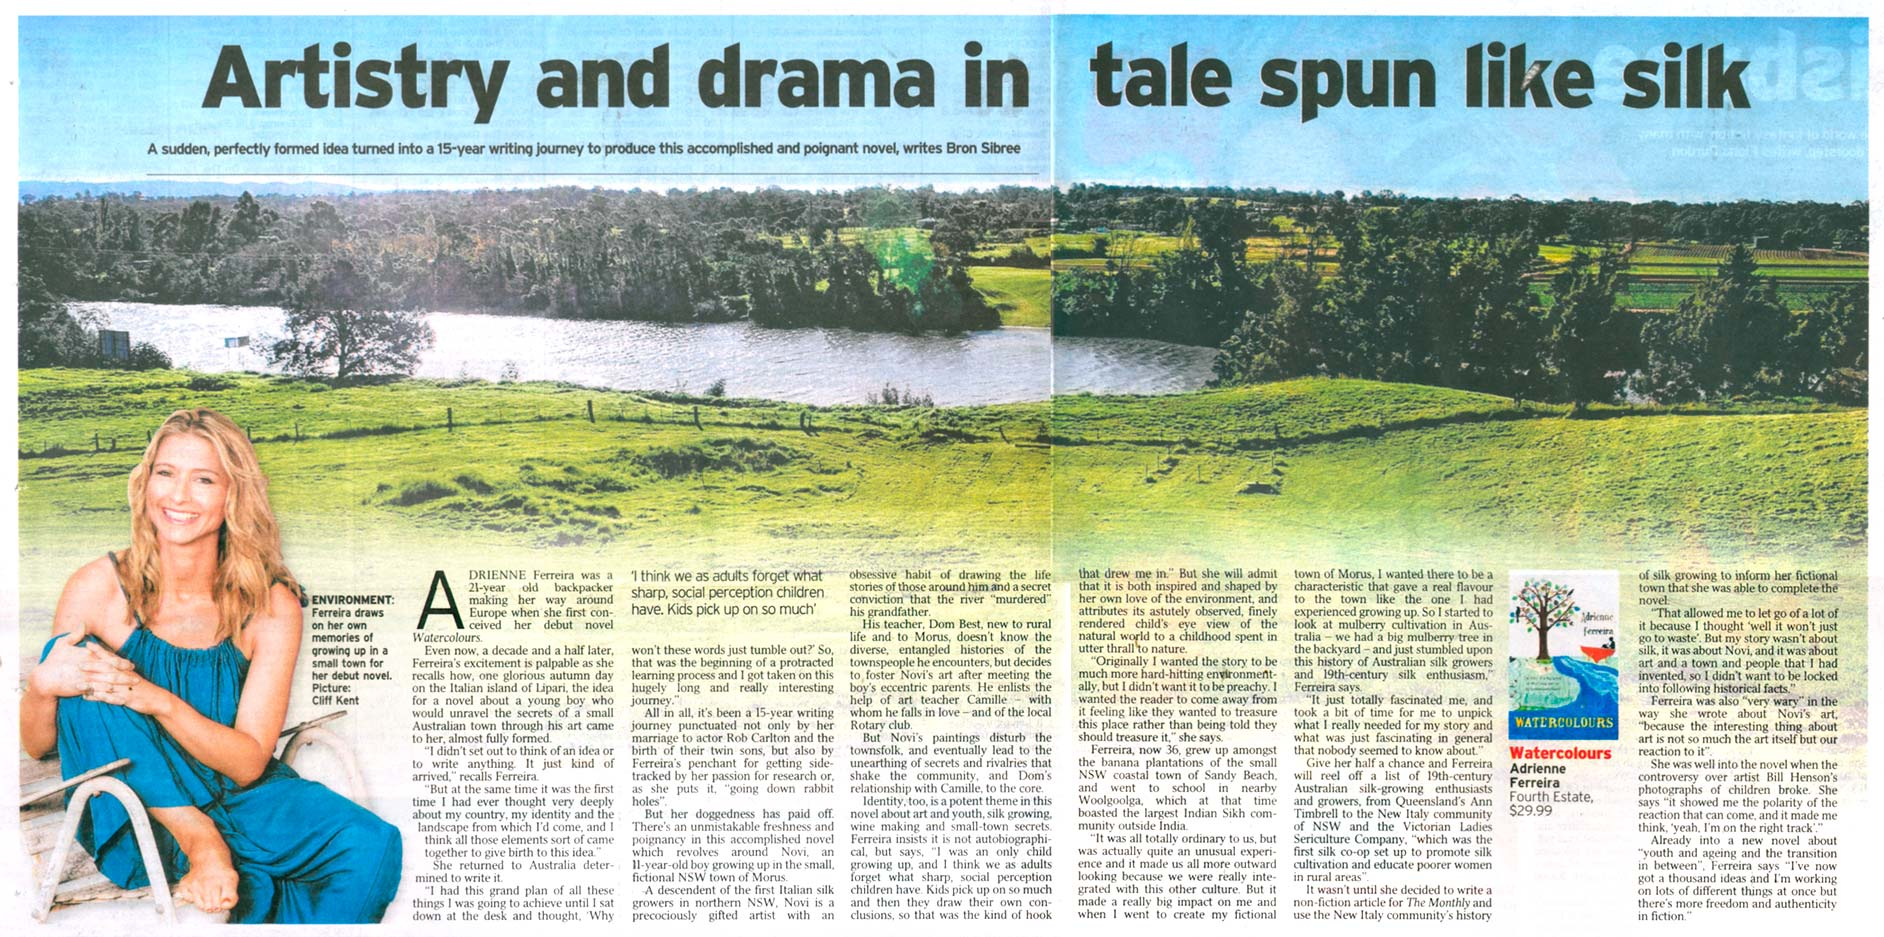 Review of Watercolours appearing in the Courier Mail